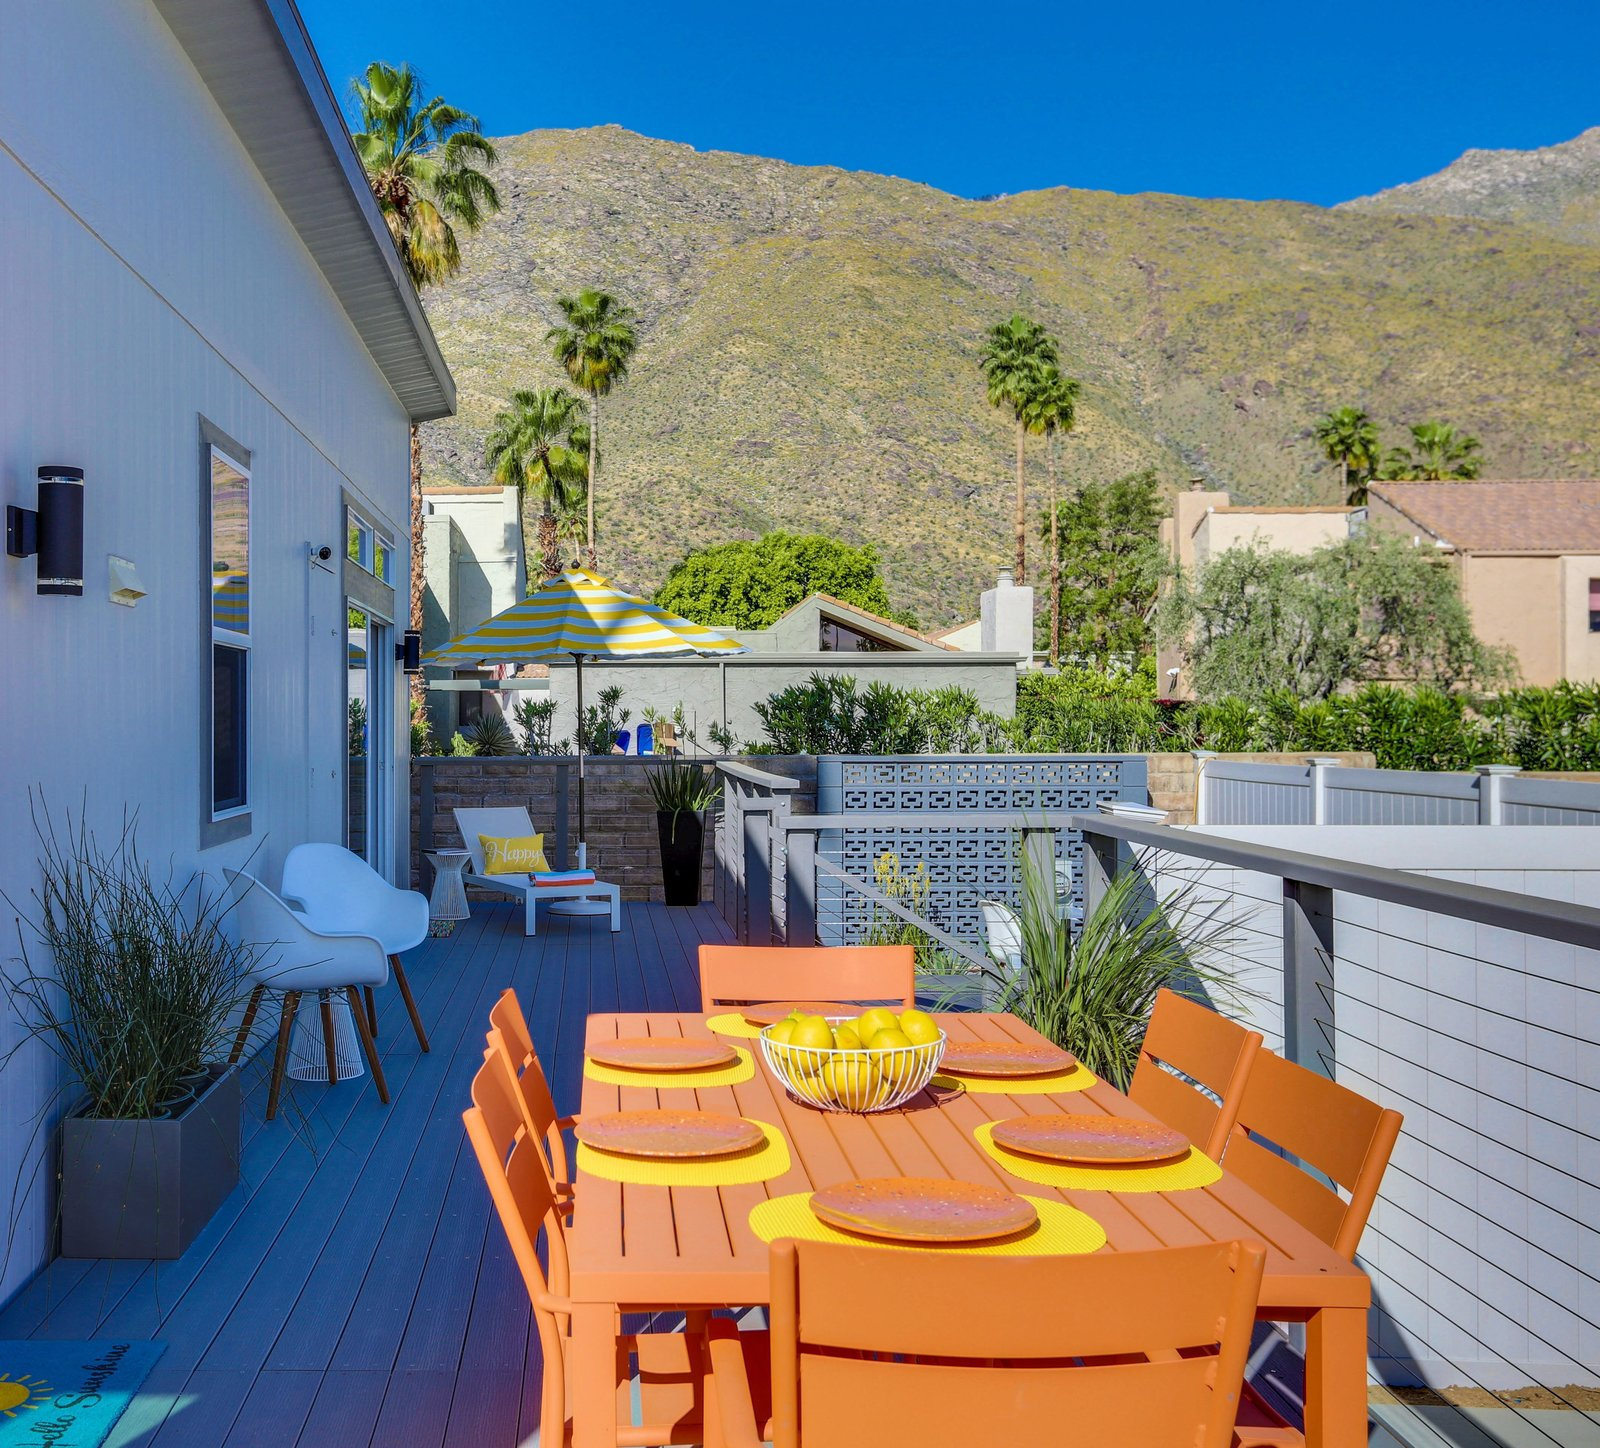 Deck - Palm Canyon Mobile Club  Tiny Homes in Palm Springs